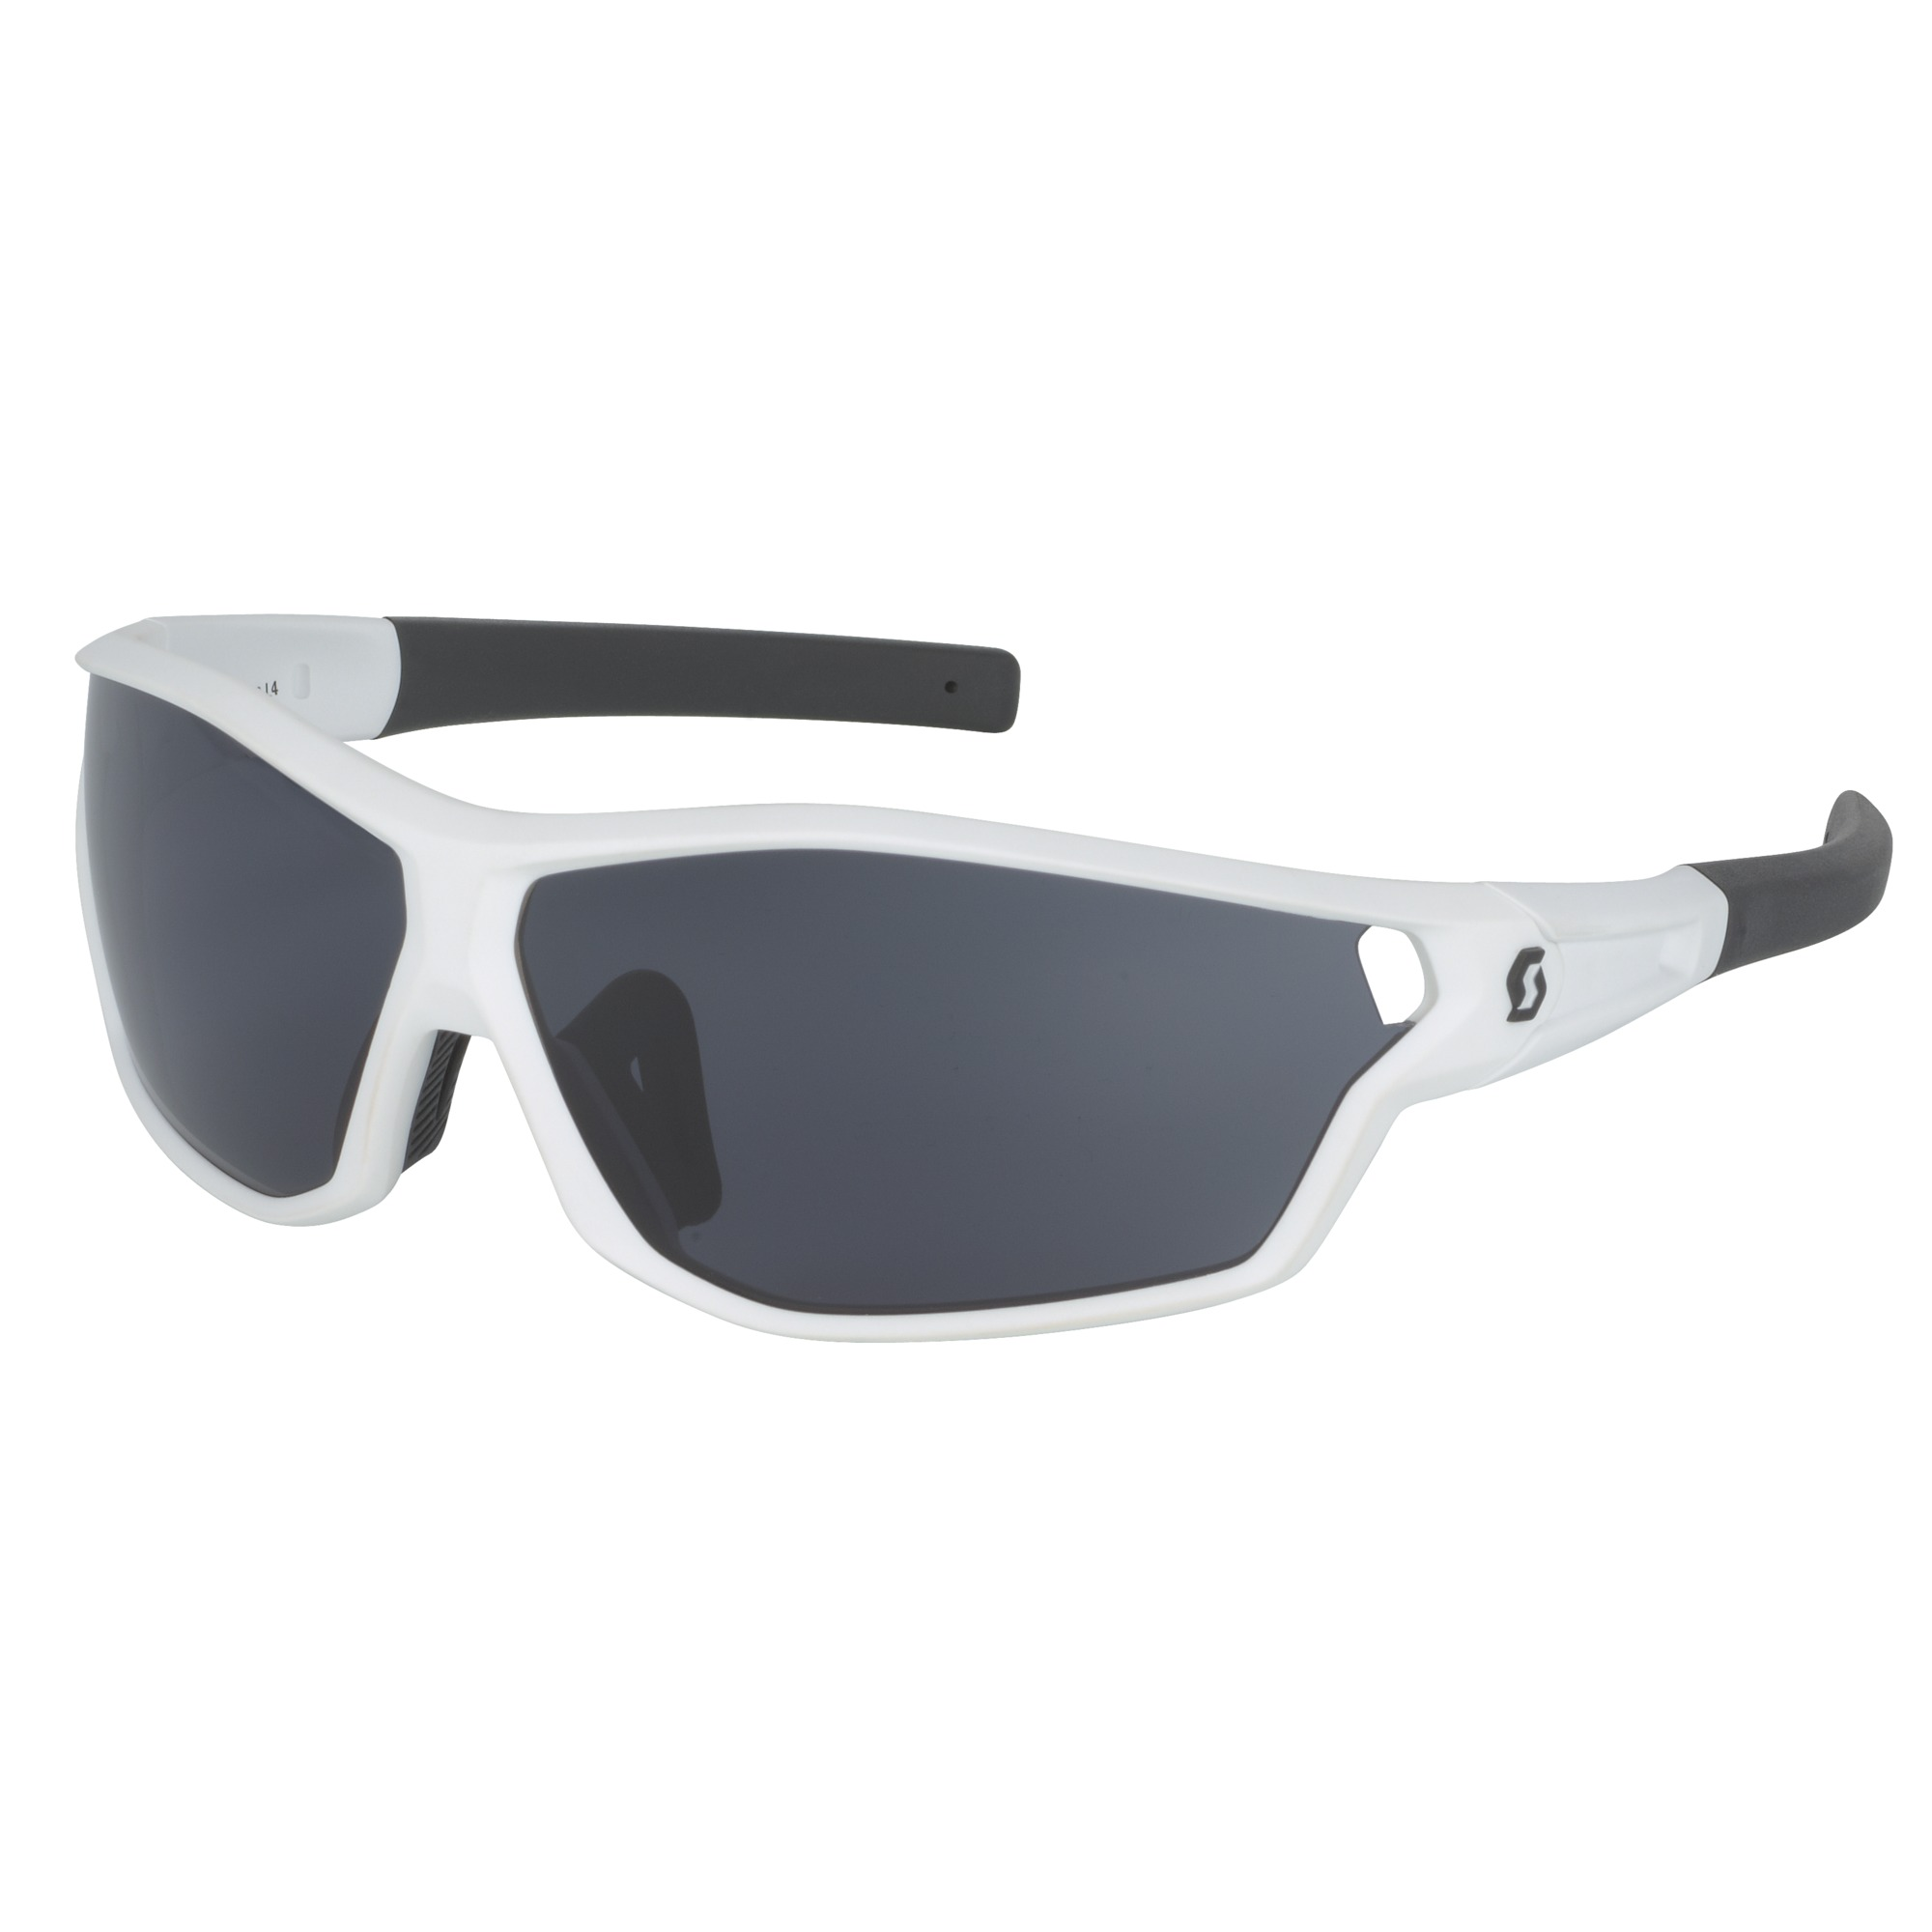 OCCHIALE SPORTIVO SCOTT LEAP FULL FRAME SUNGLASSES 241968 WHITE MATT BLACK.jpg